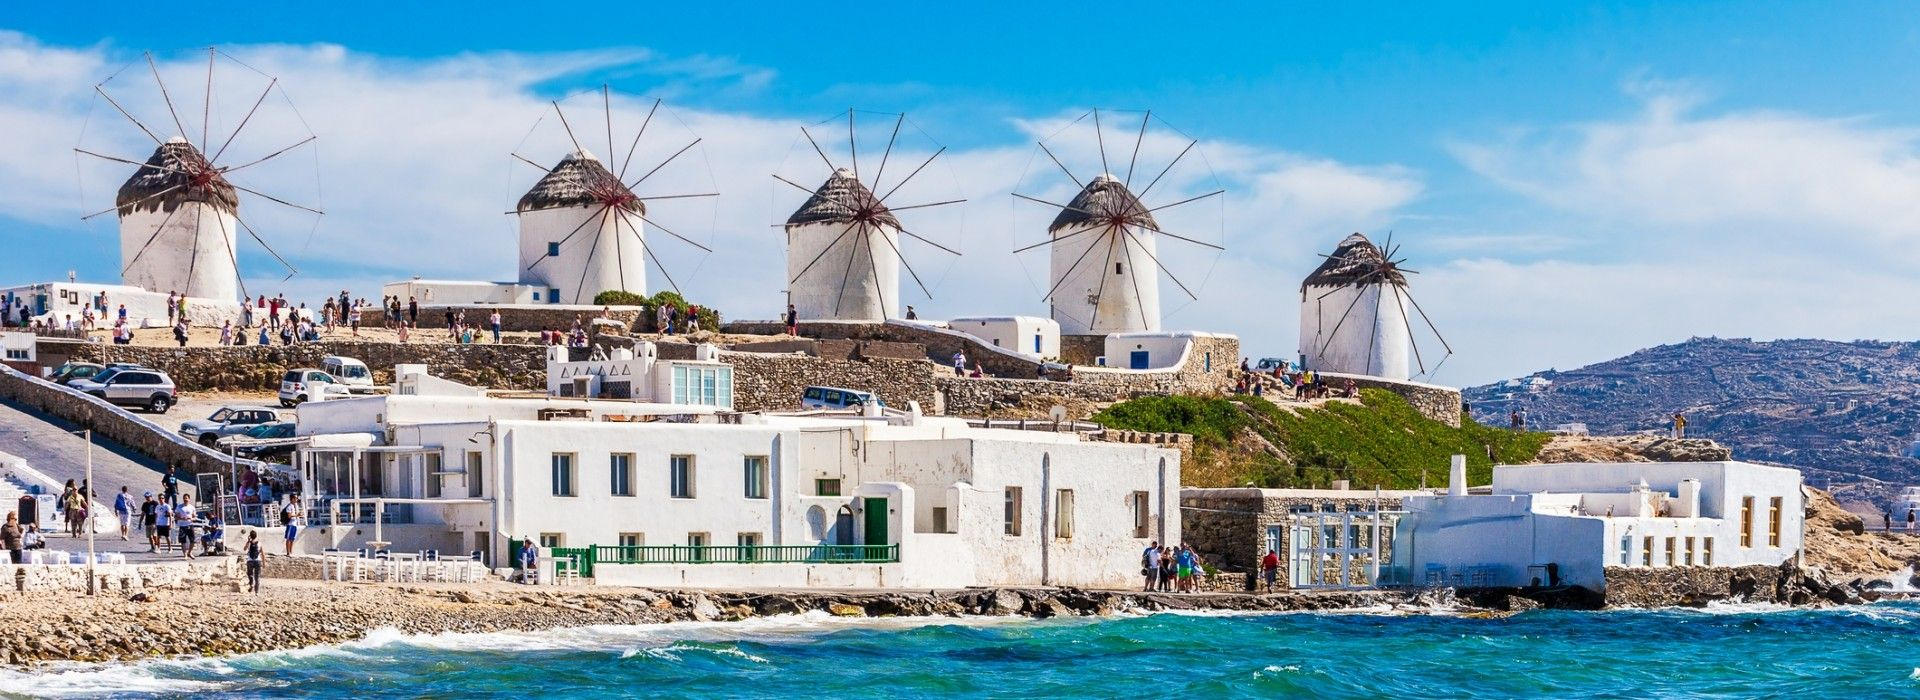 The Mykonos windmills an iconic feature of the Greek island of the Mykonos